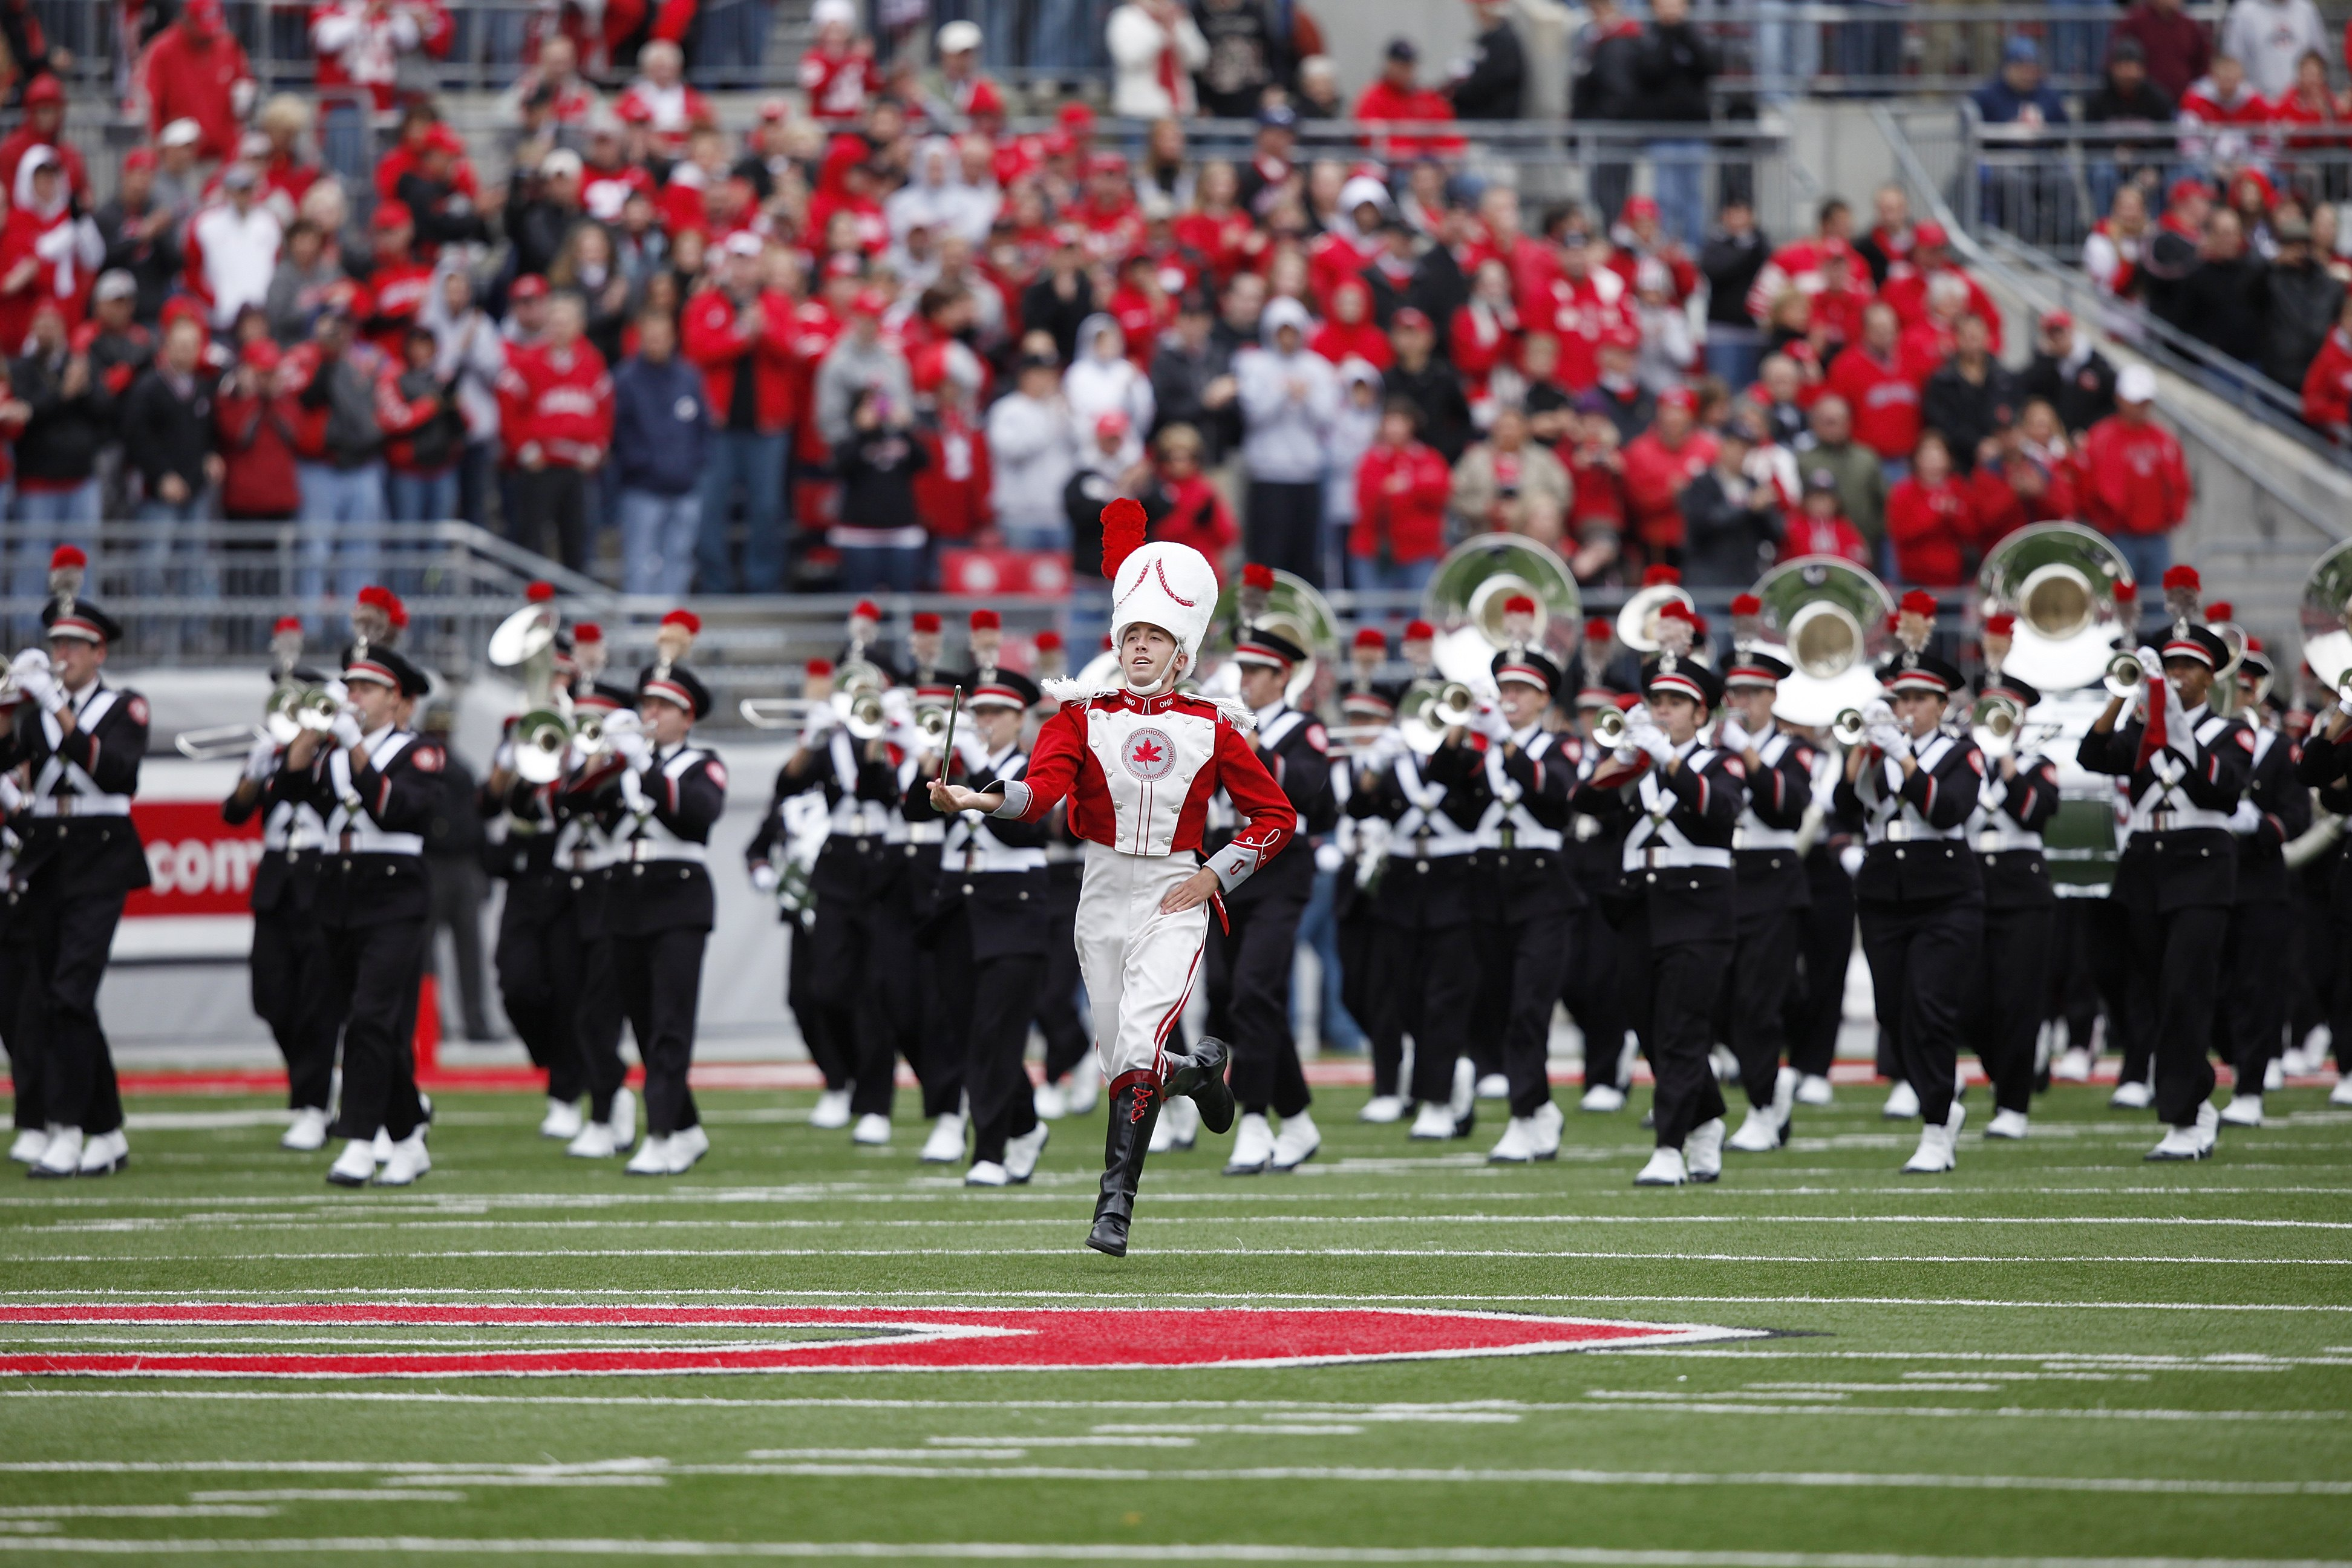 08ee88f8740 COLUMBUS, OH - OCTOBER 24: Ohio State Buckeyes marching band performs on  the field before the game against the Minnesota Golden Gophers at Ohio  Stadium on ...